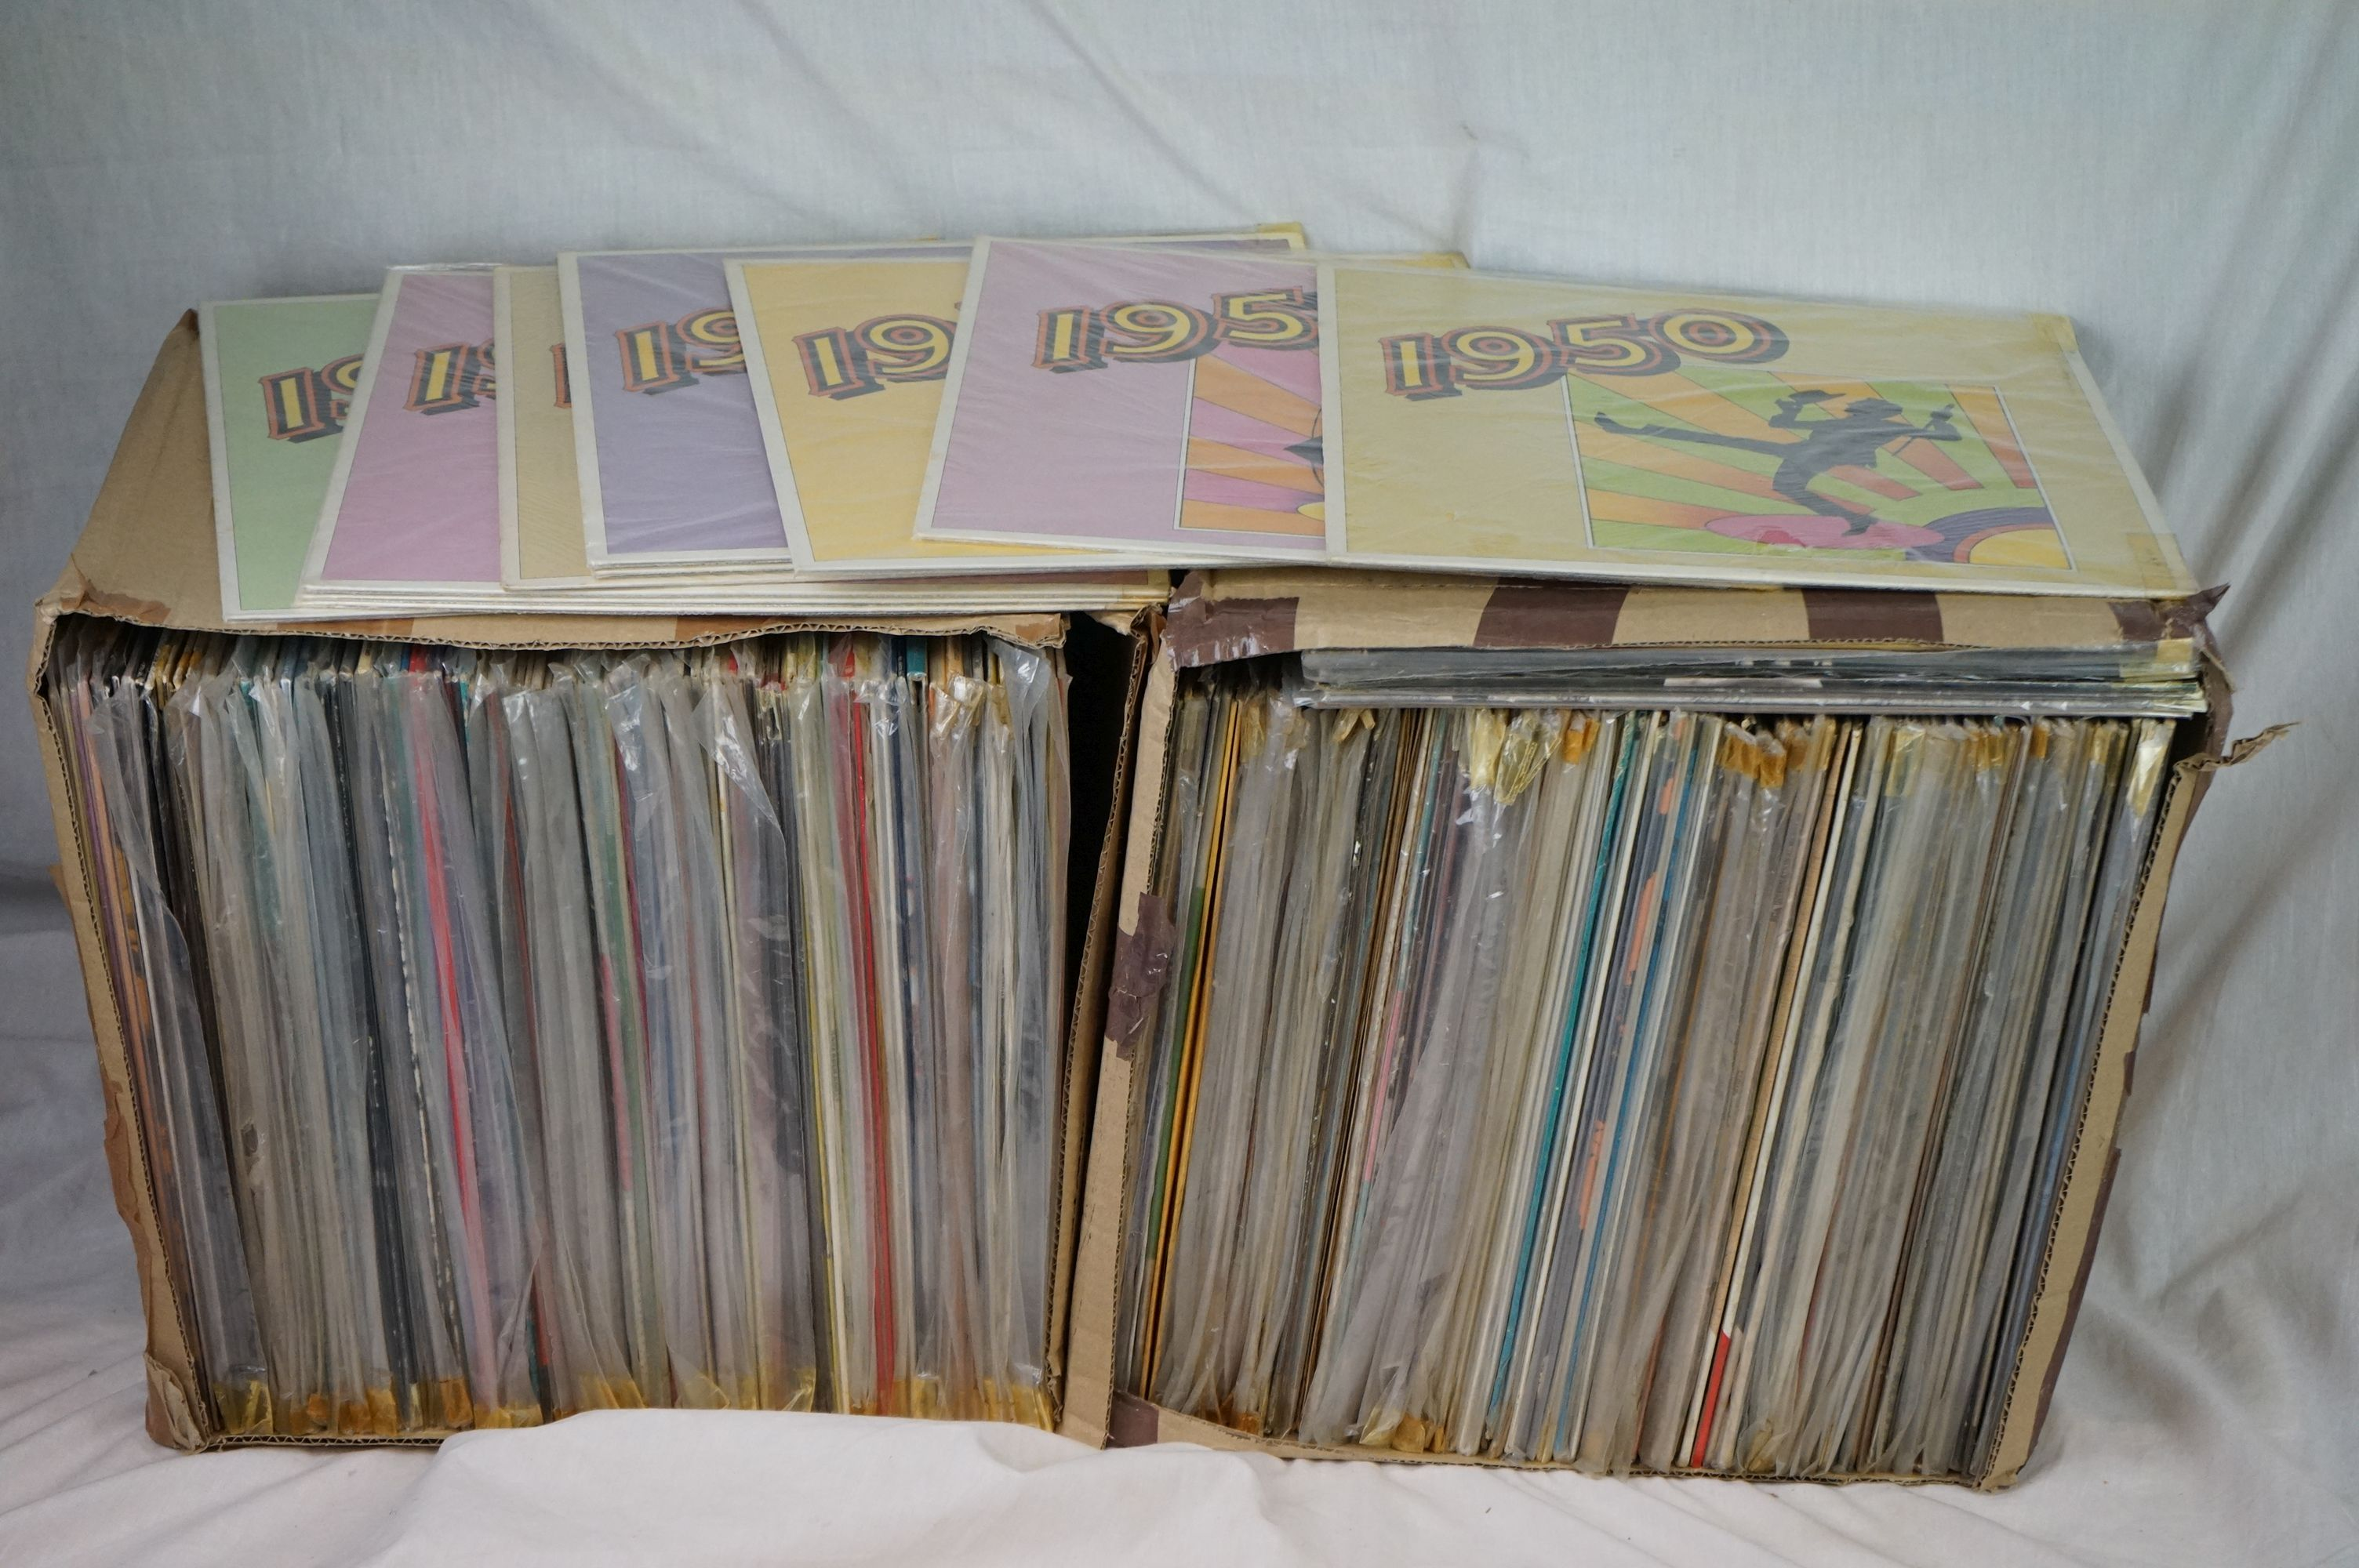 Vinyl - Around 200 LPs to include Country, Rock n Roll, Rockabilly, Compilations etc, sleeves and